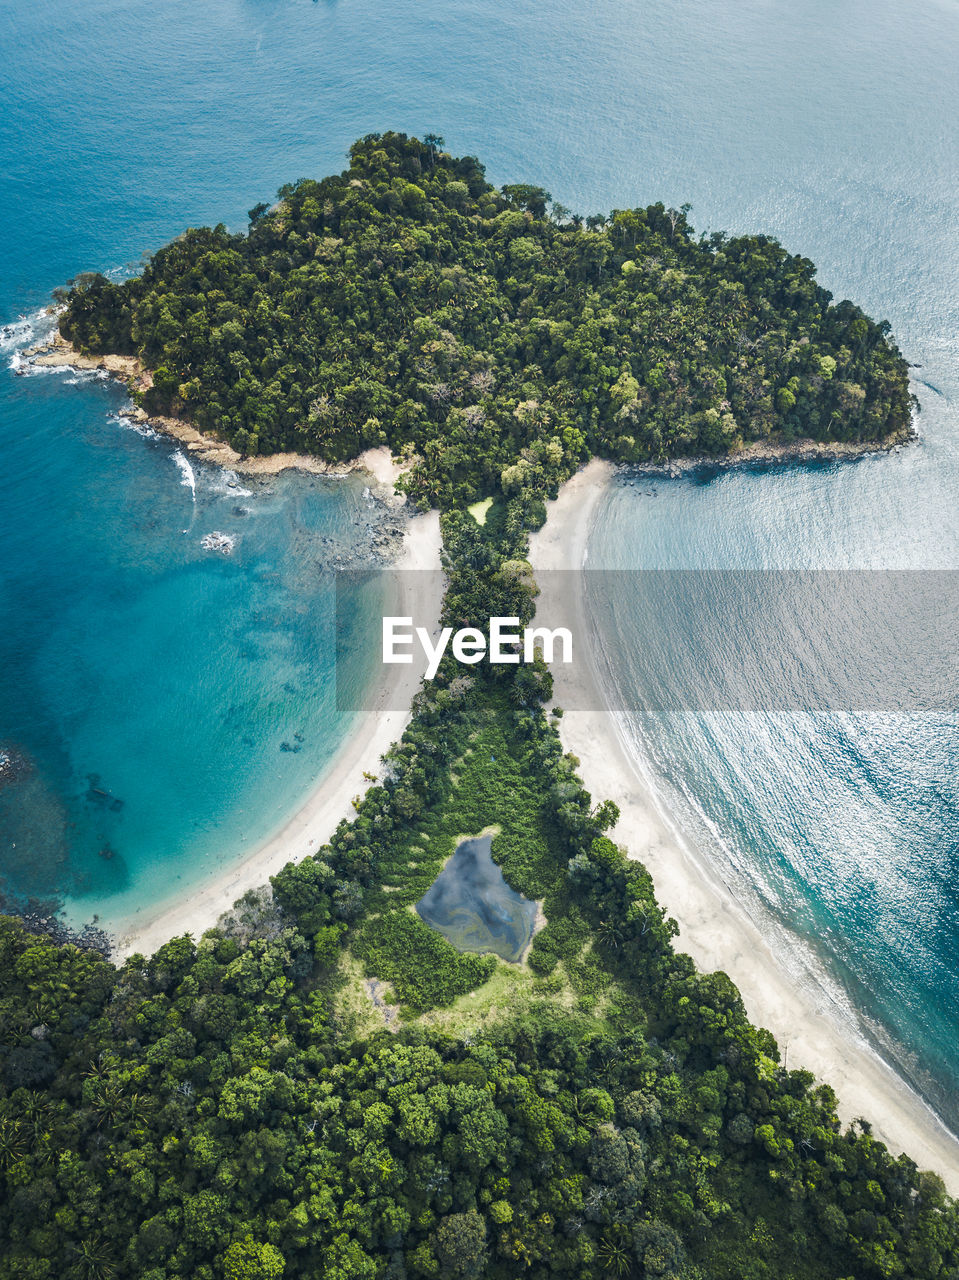 Aerial view of island amidst sea